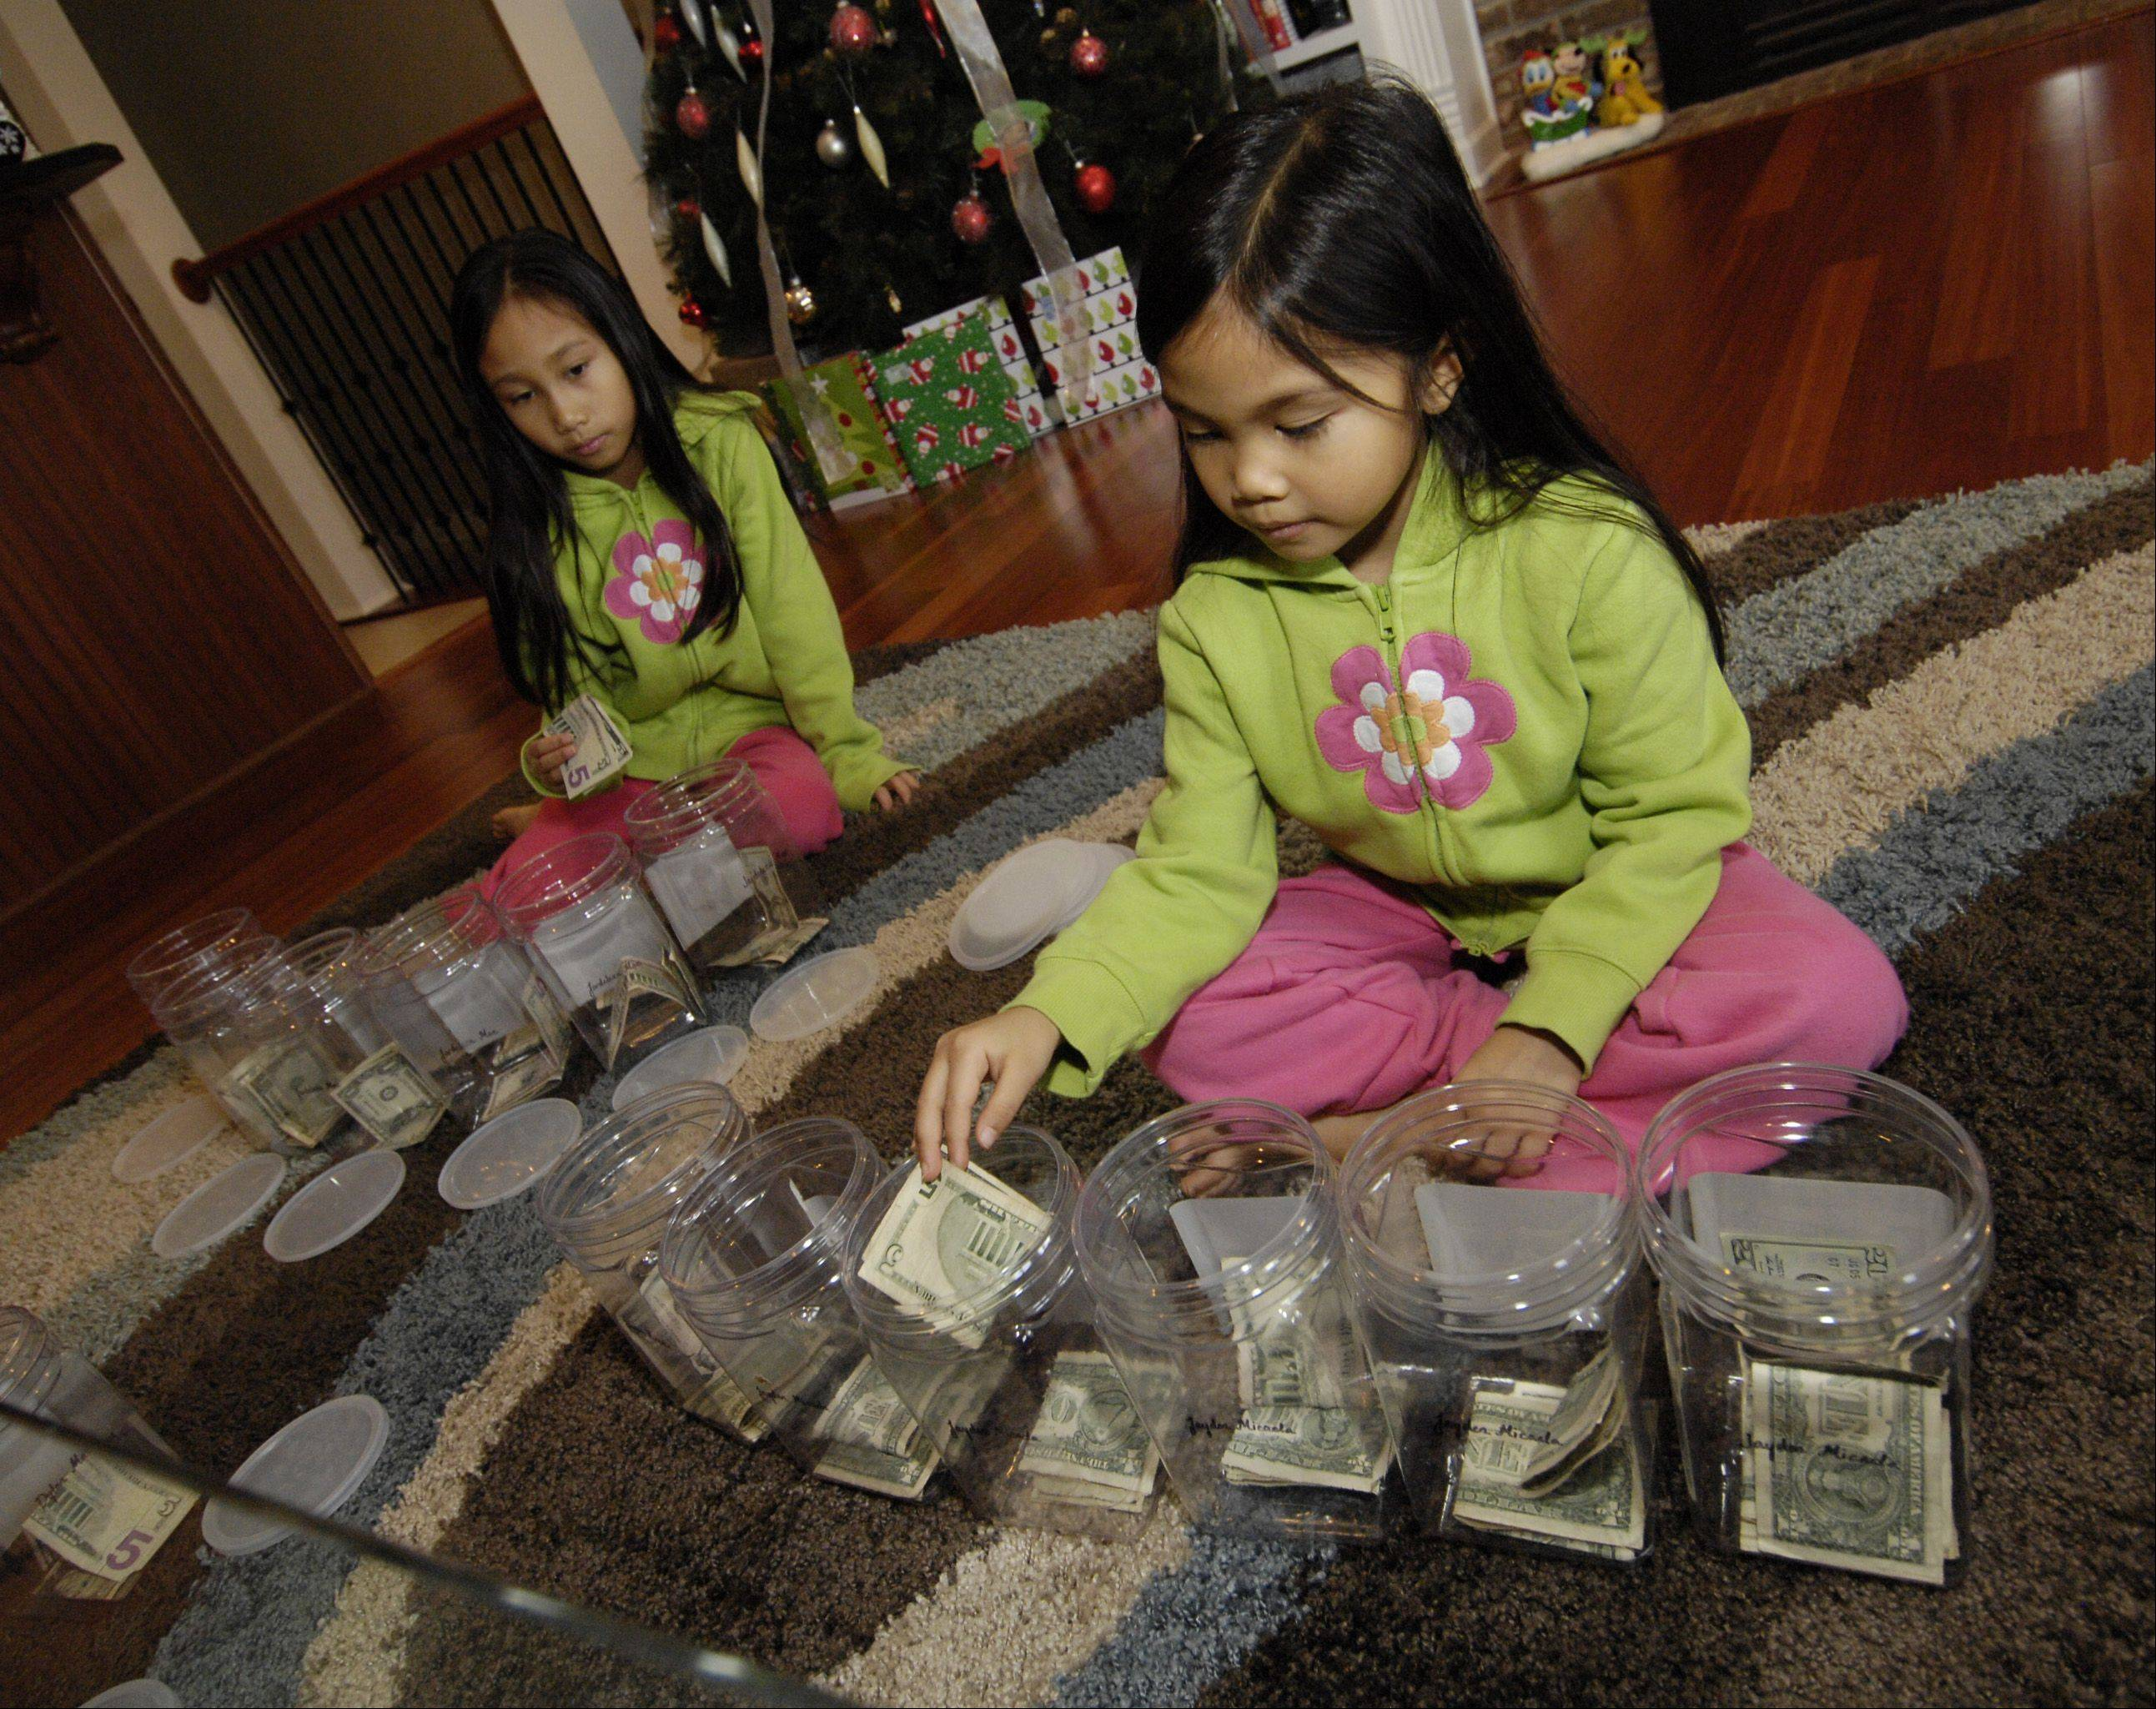 Jardeleza Javier, 9, and her sister Jayden, 5, put money in their labeled money jars. Their mother, Melanie Jane Nicolas, believes kids should start to manage their own money as soon as they understand the difference between a want and a need.